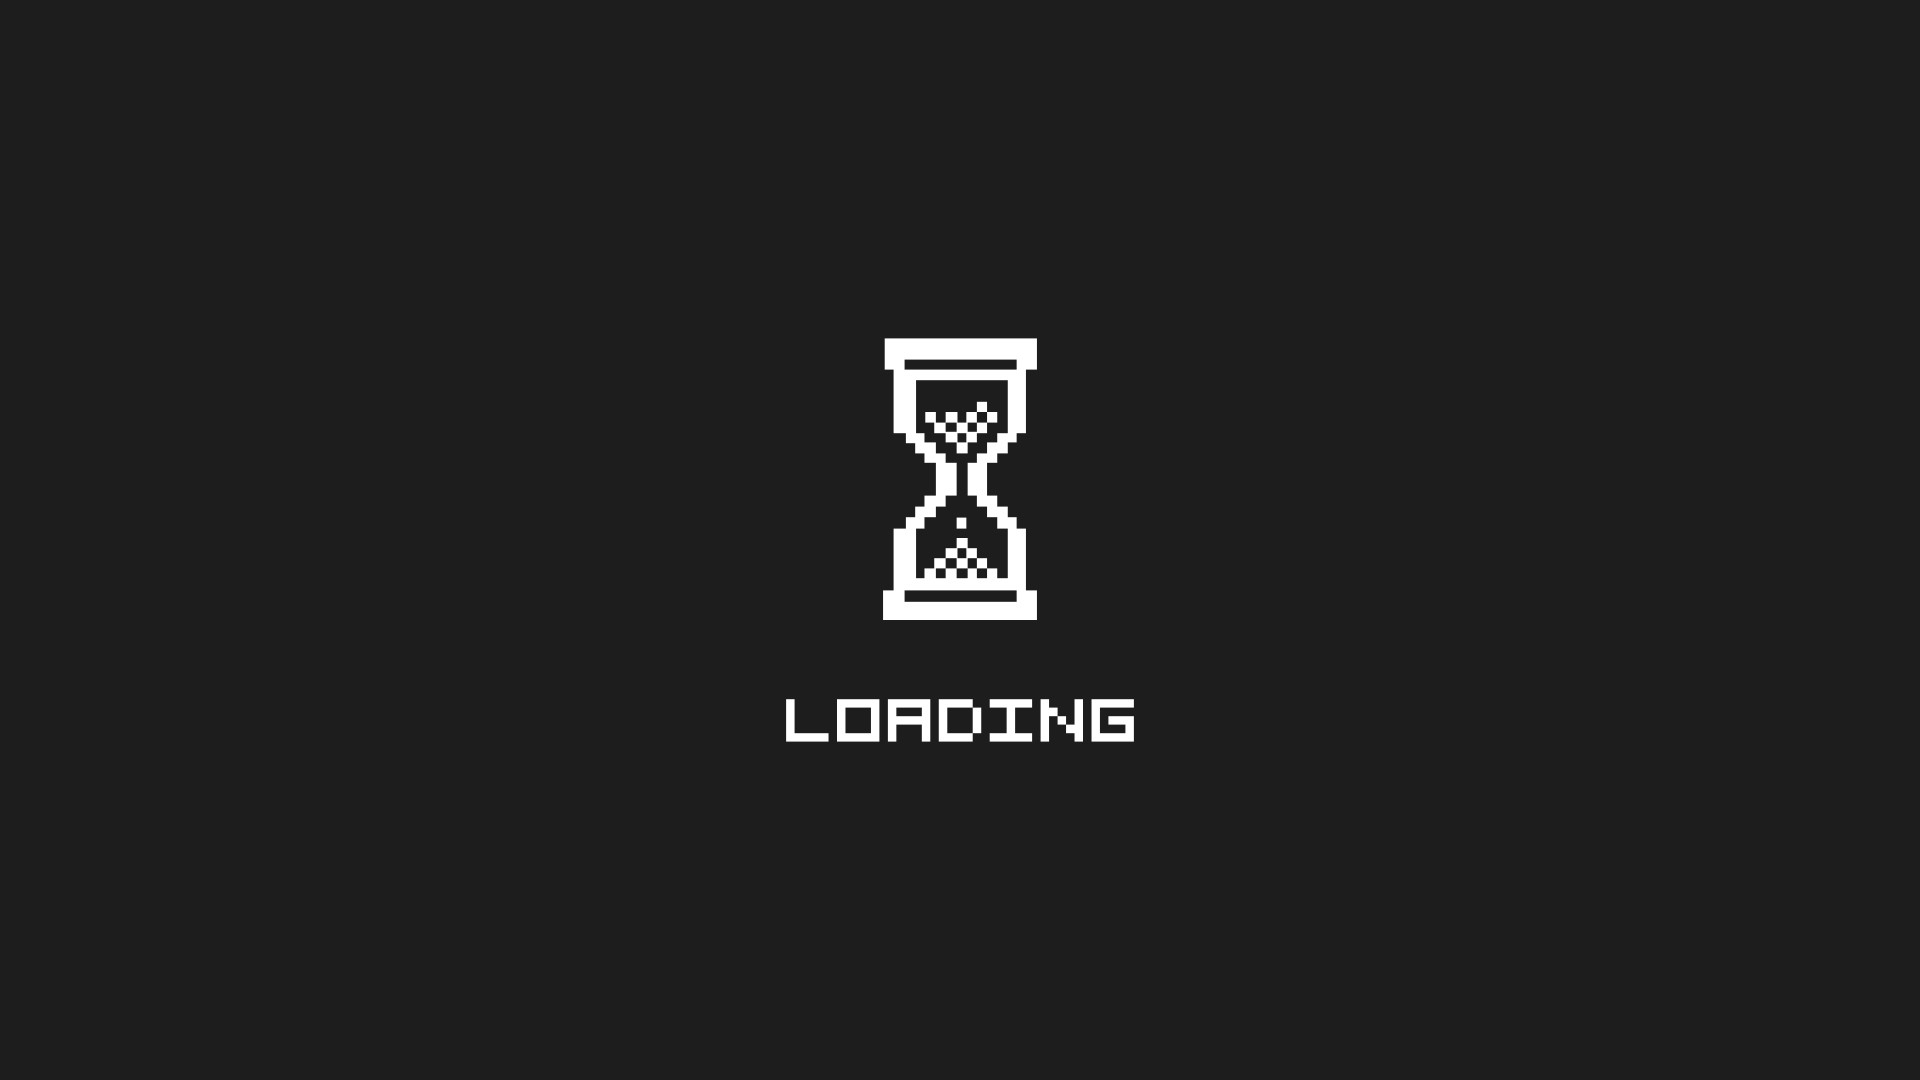 Waiting loading